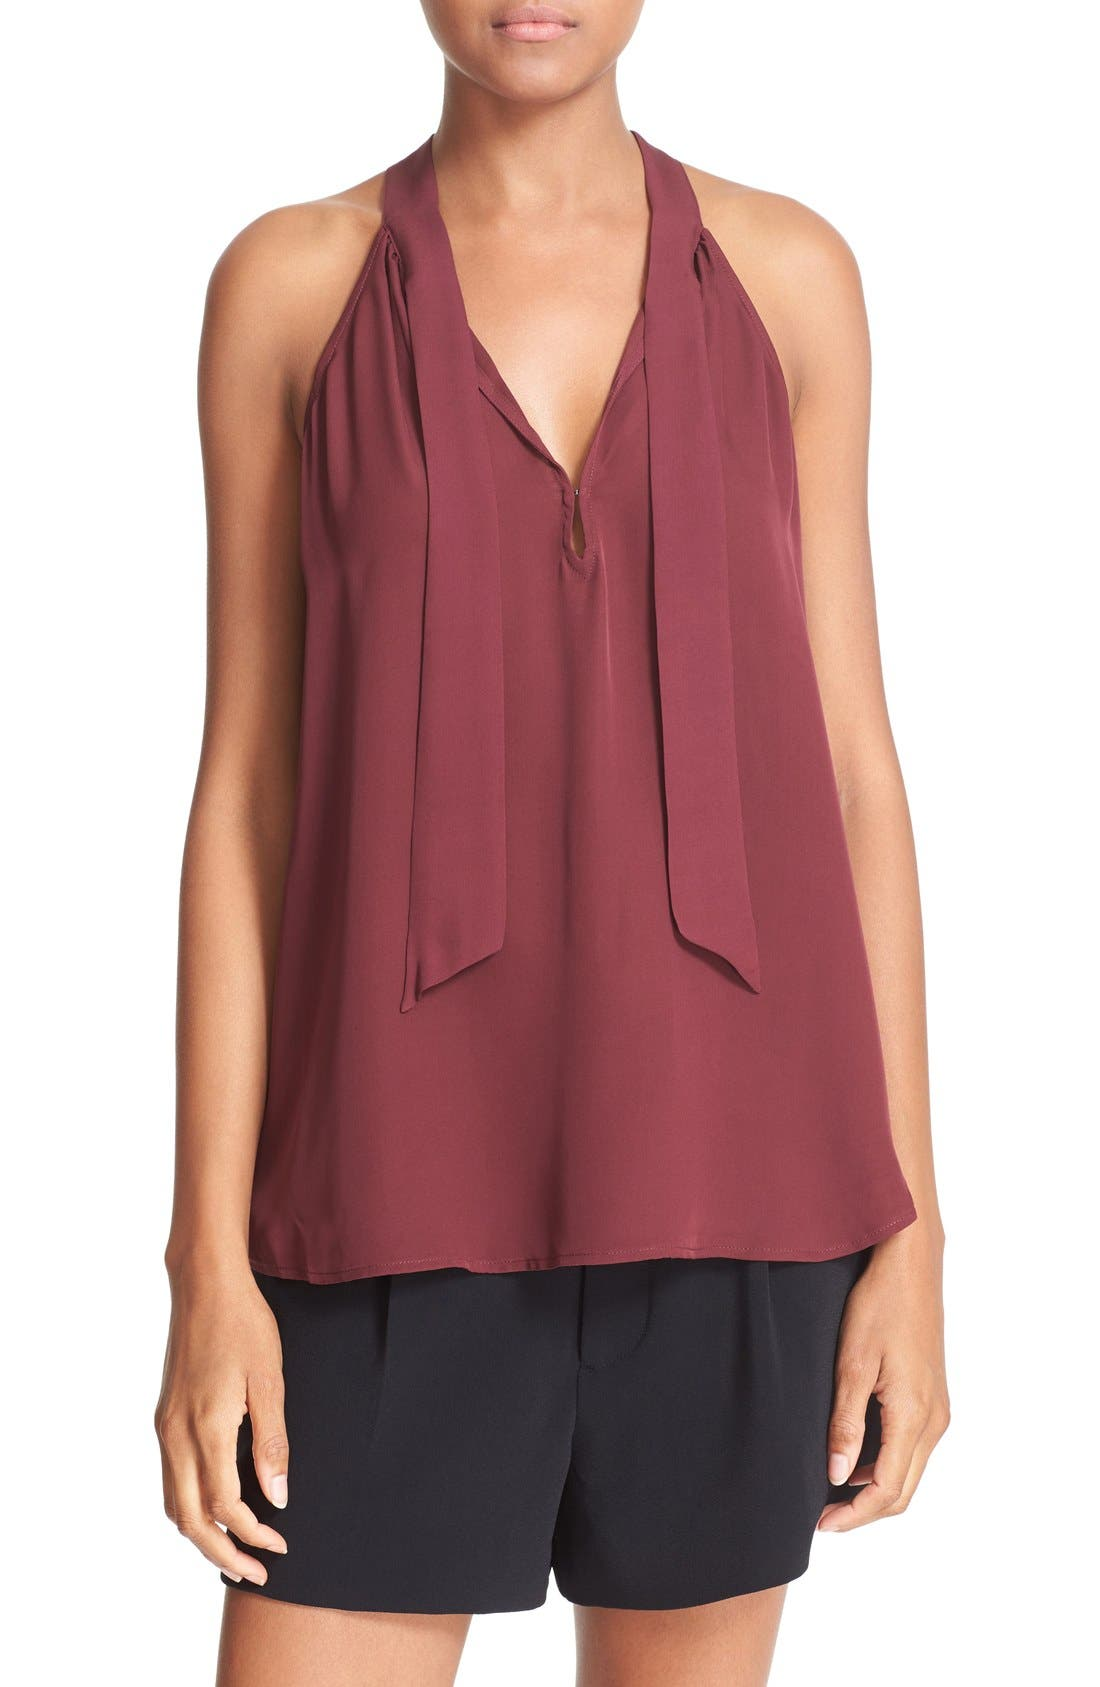 Alternate Image 1 Selected - Joie 'Melisent' Sleeveless Tie Neck Silk Blouse